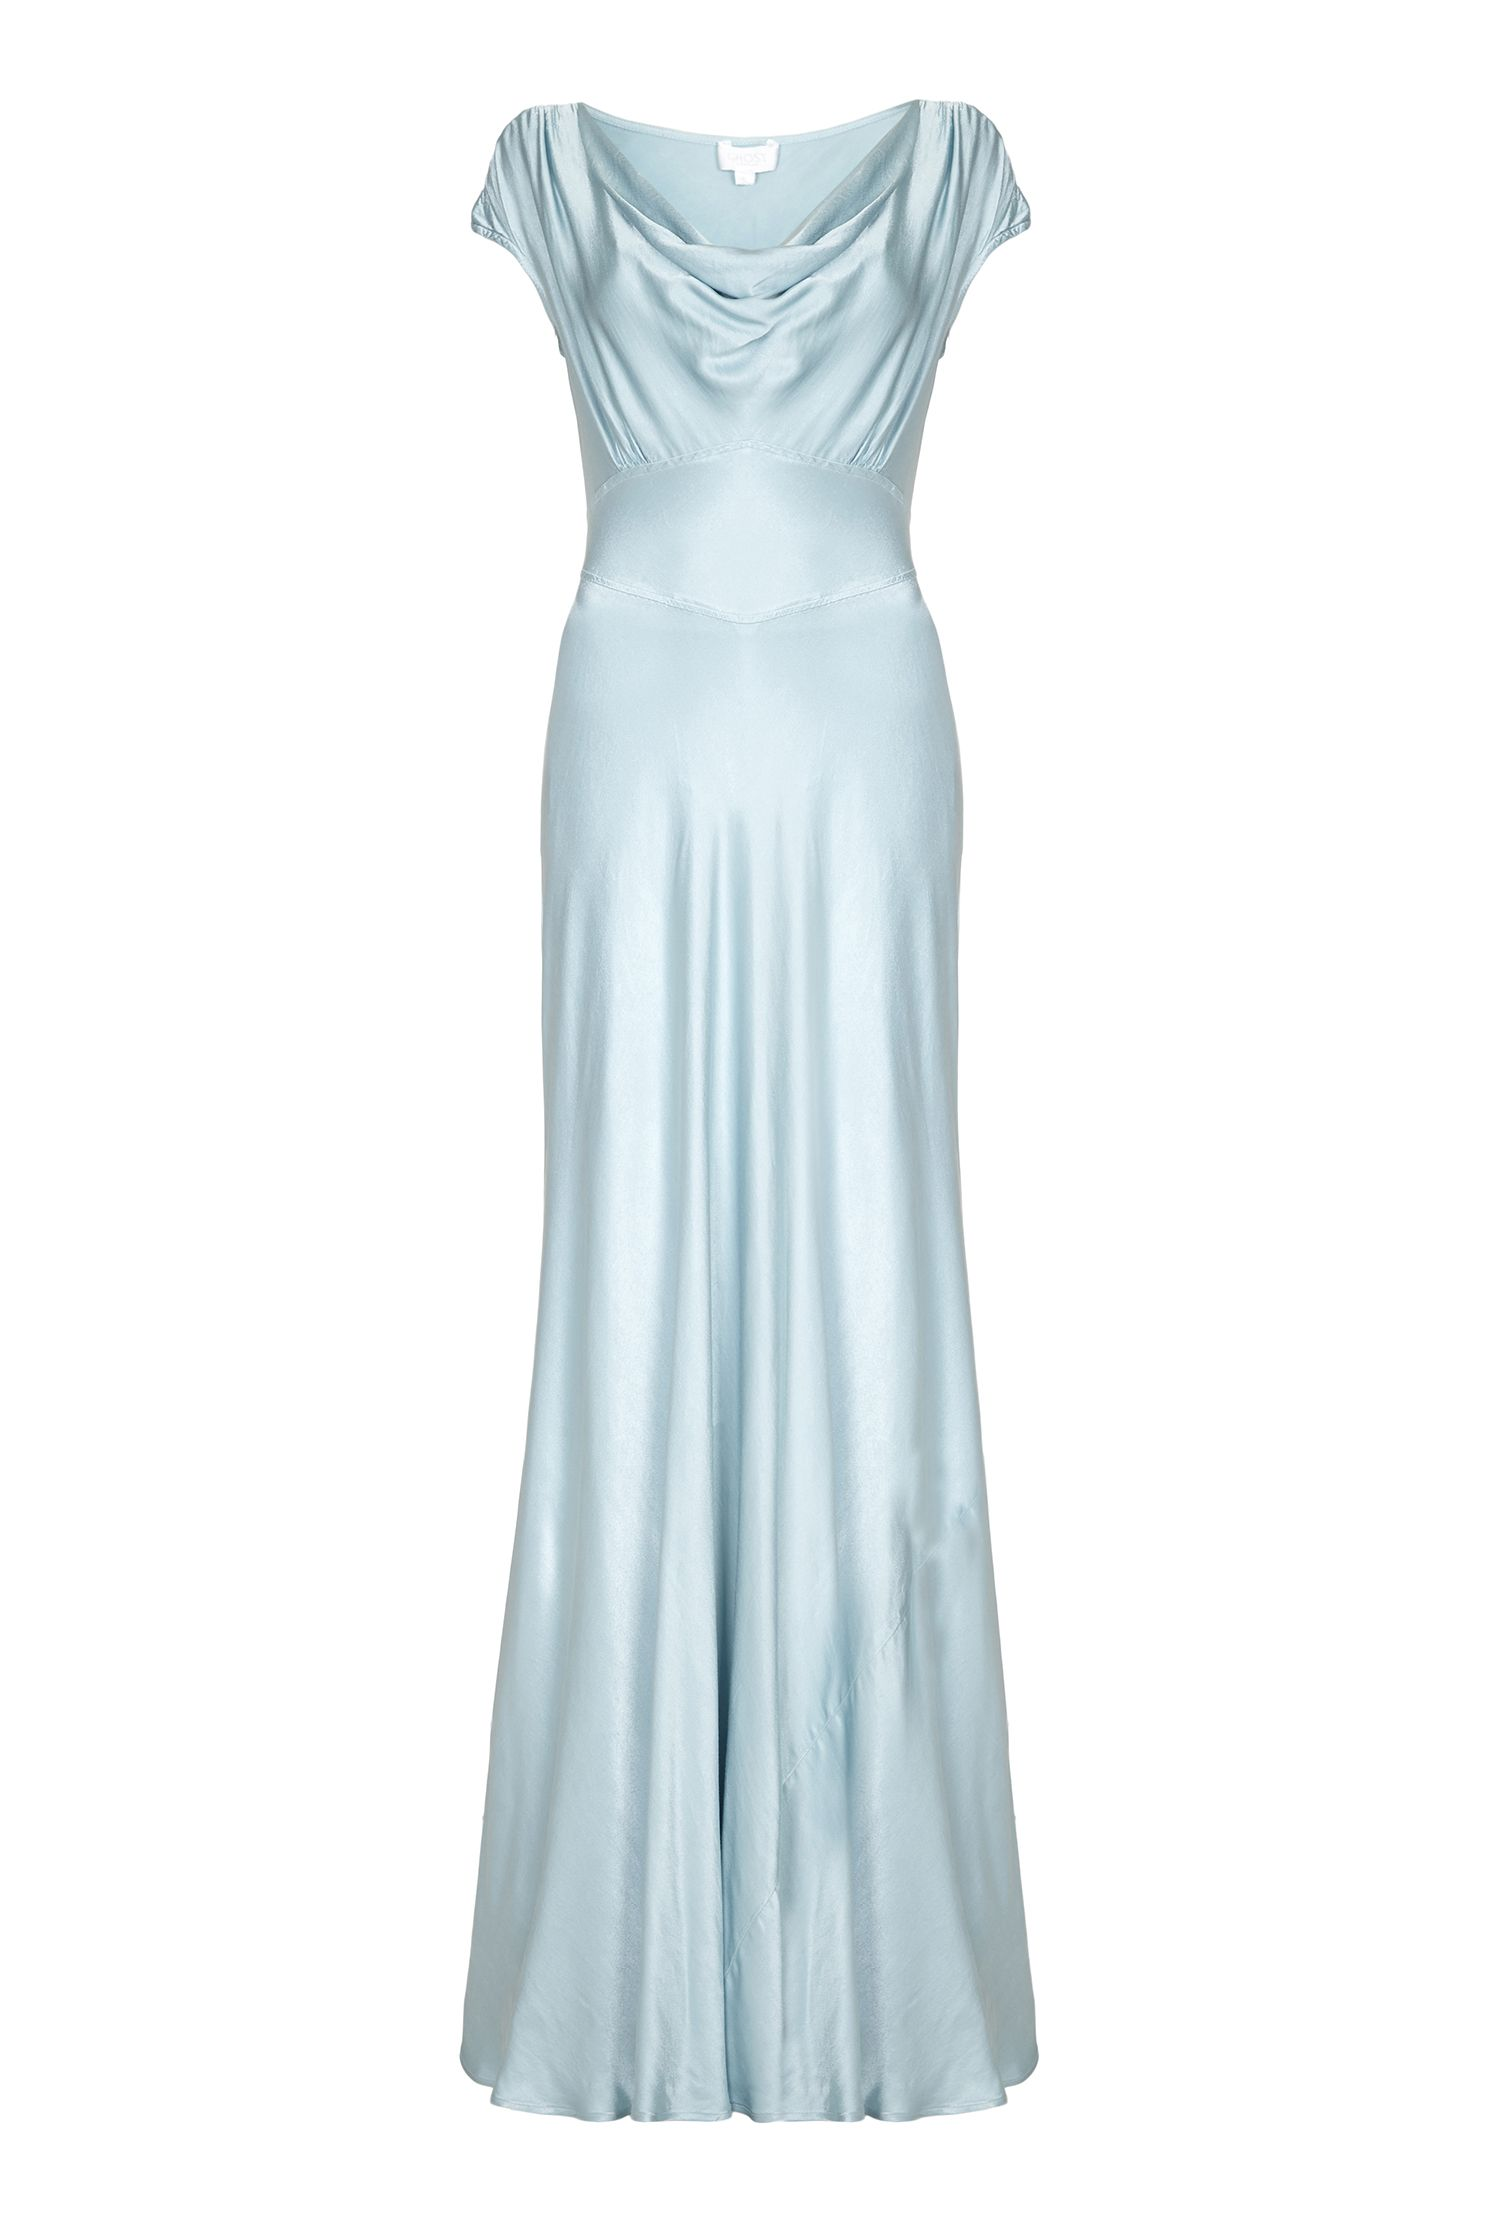 Ghost Fern Dress, Light Blue